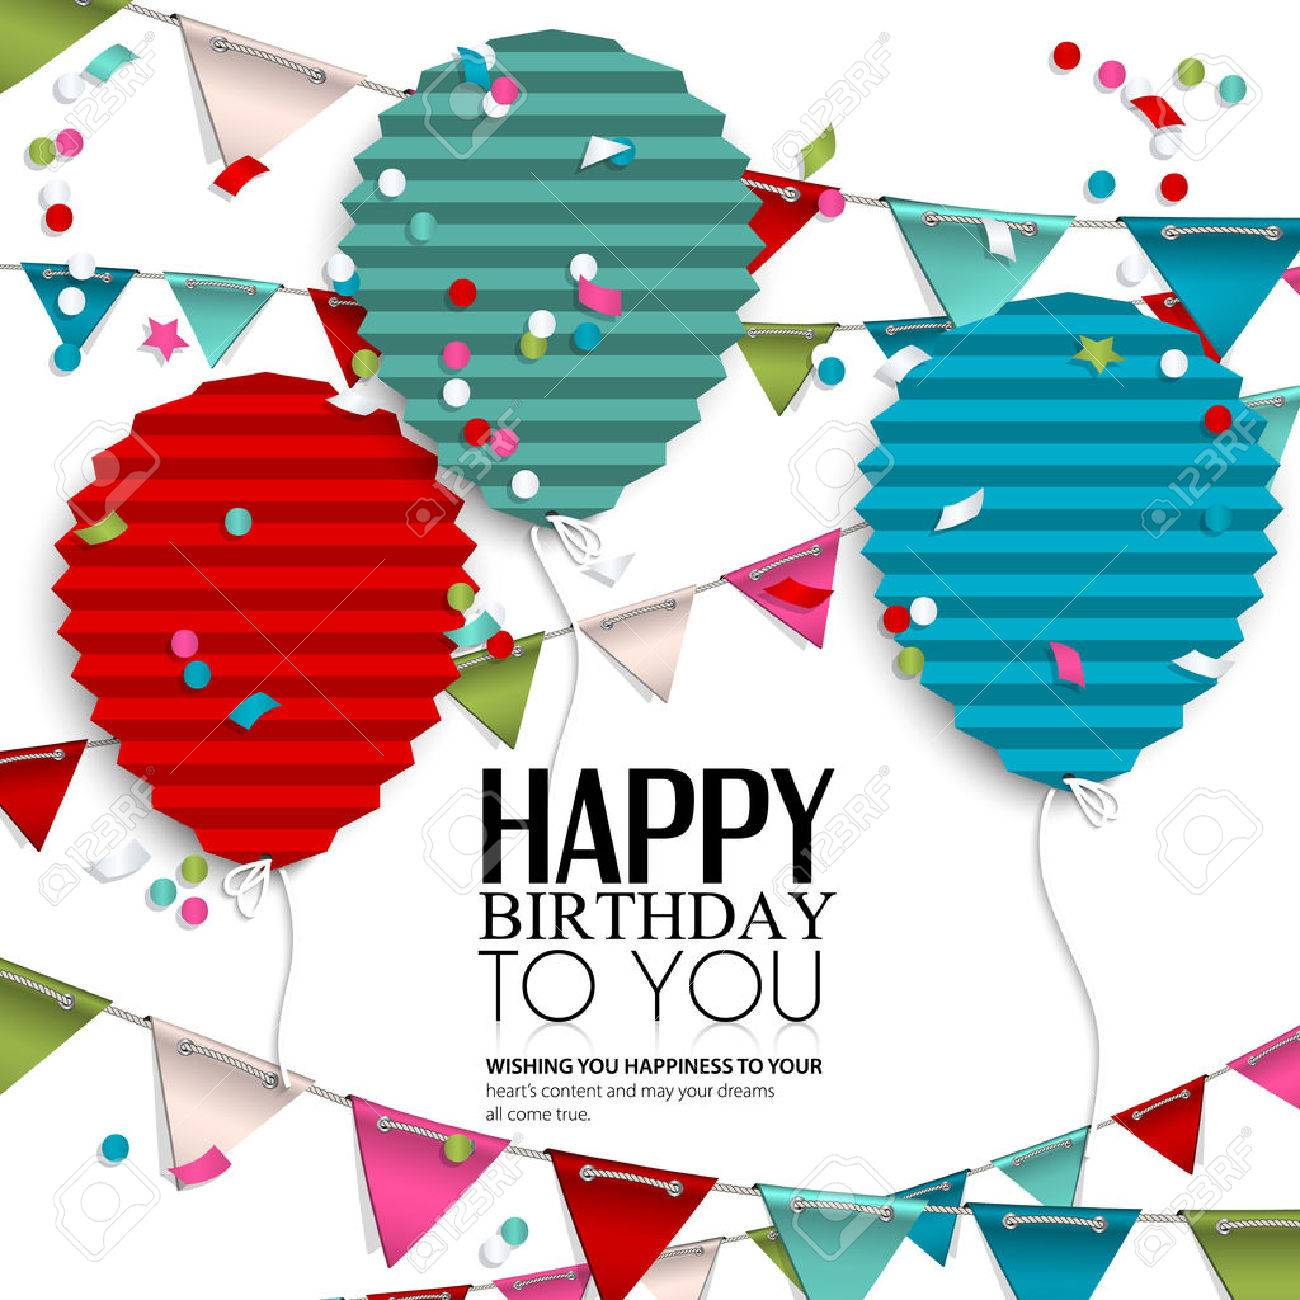 Birthday card with balloons in the style of flat folded paper. - 32387007